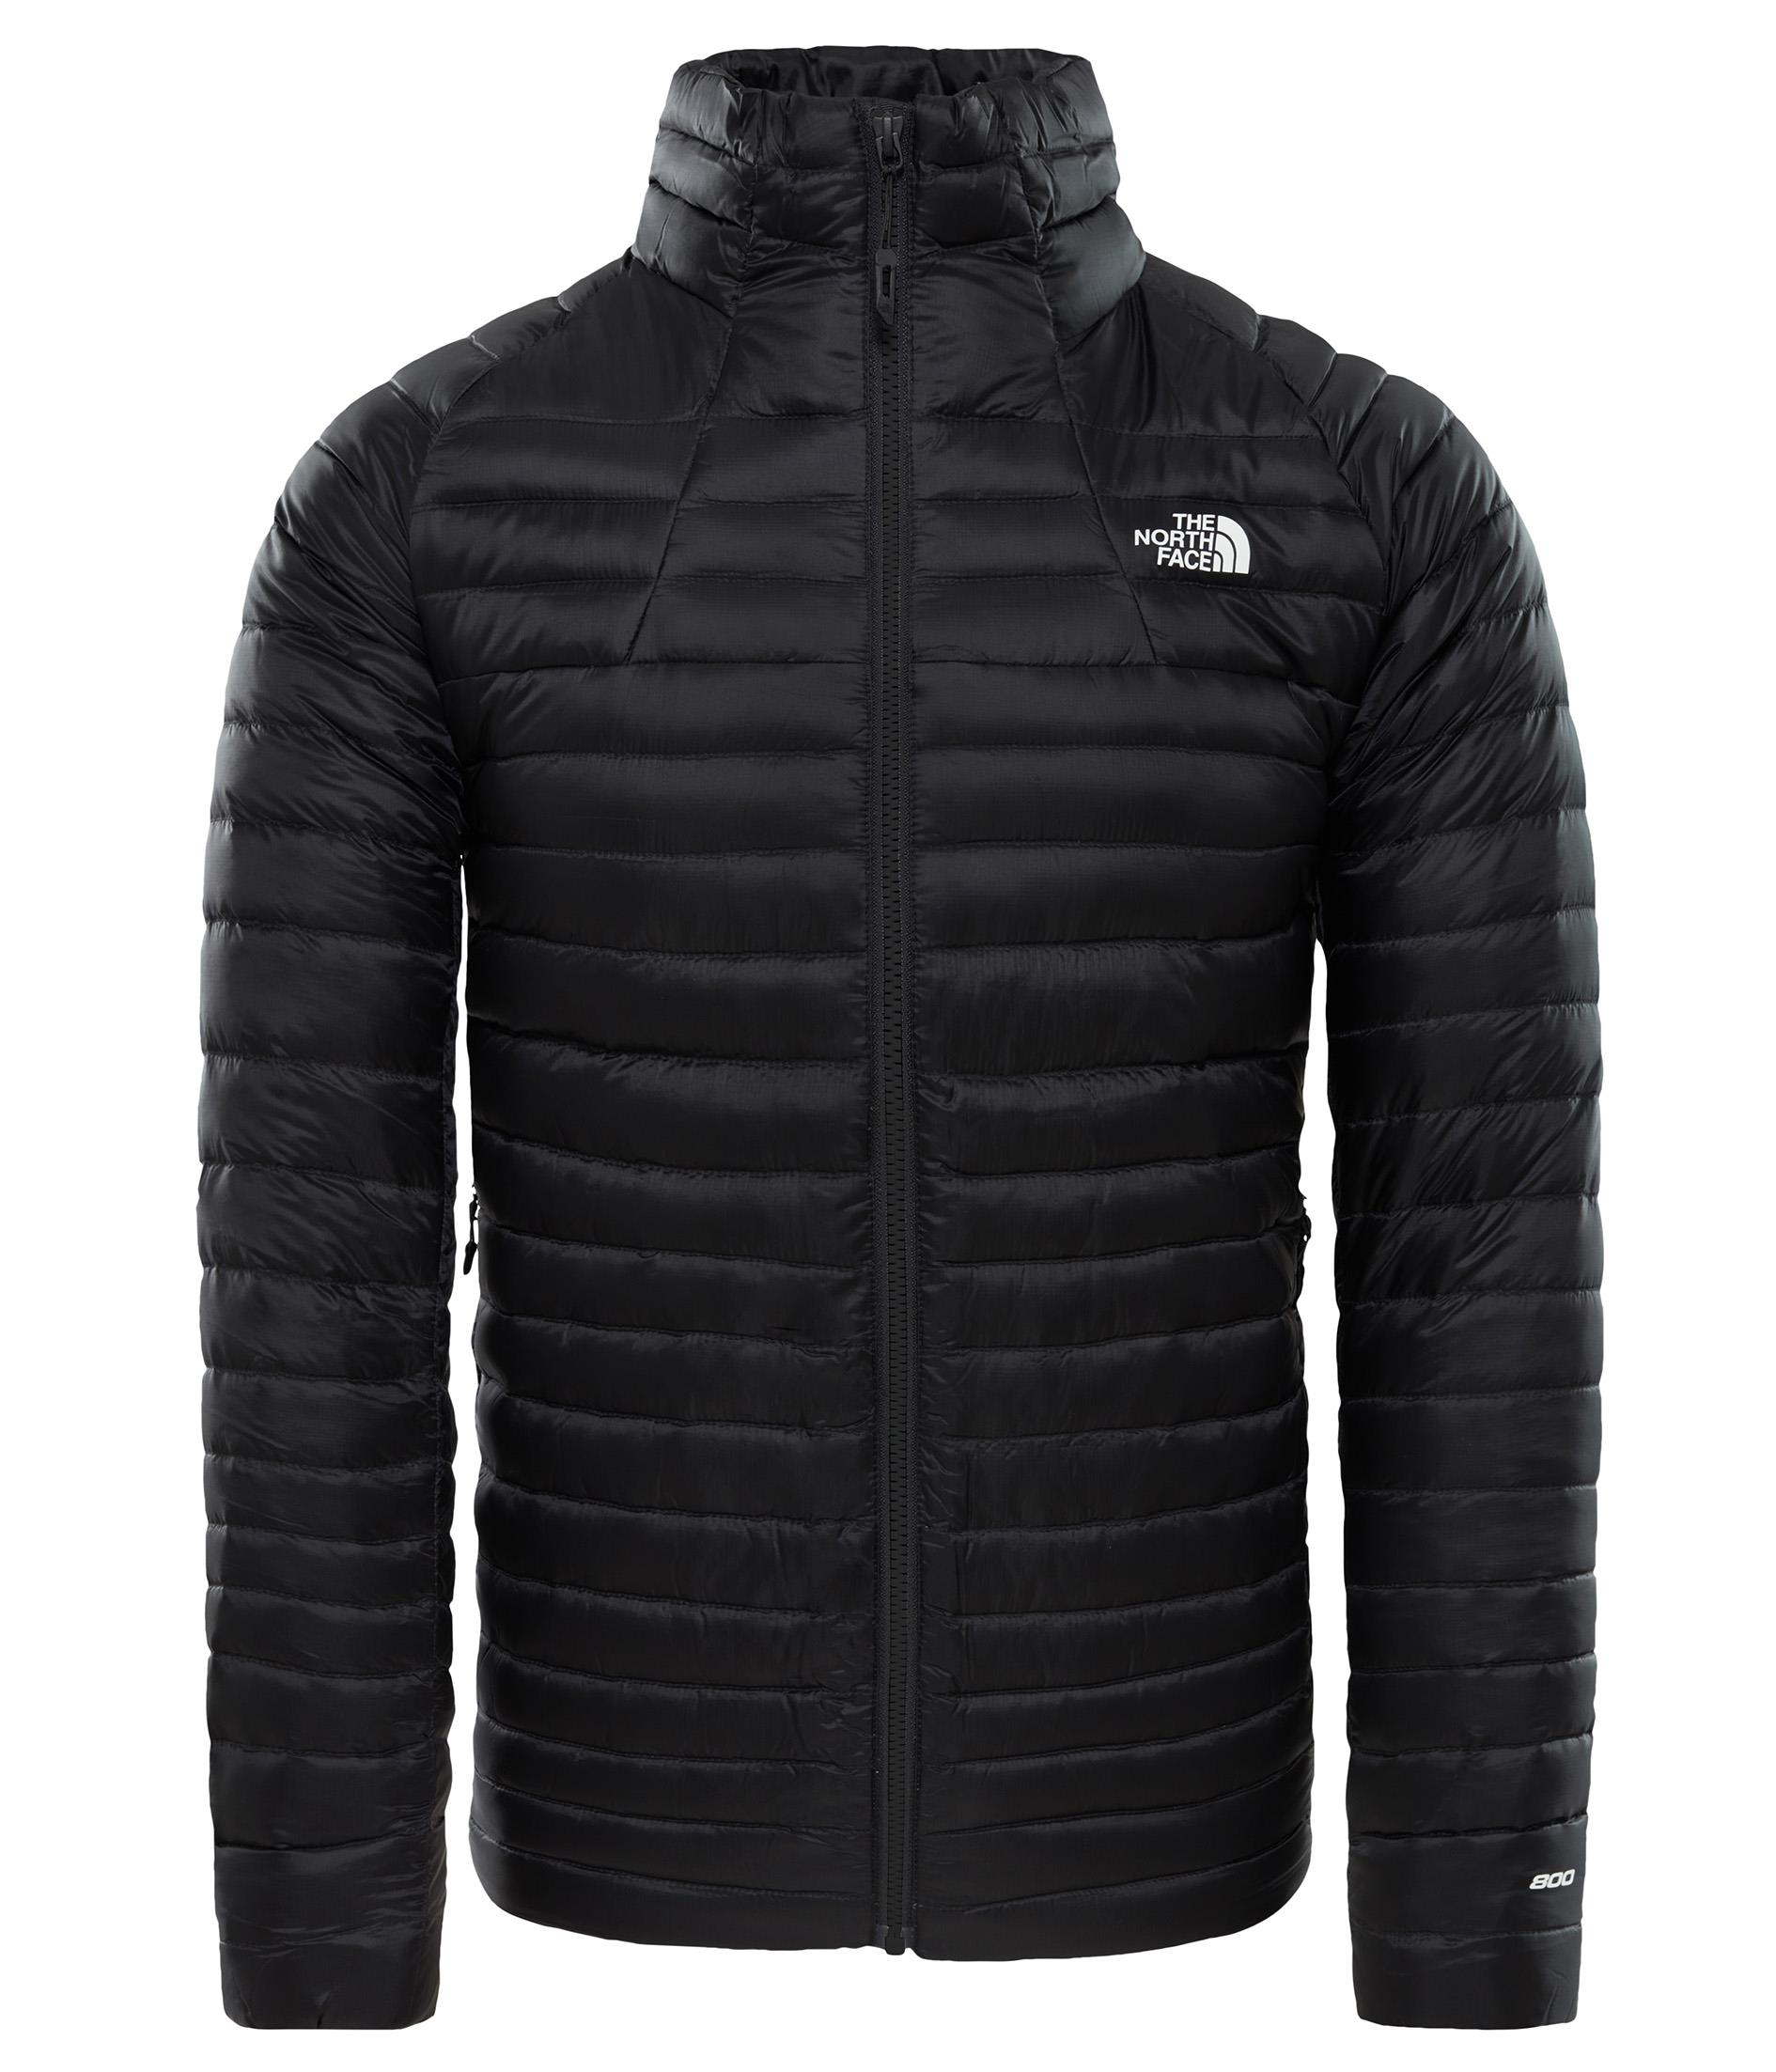 The North Face Erkek Impendor Down Jkt Ceket